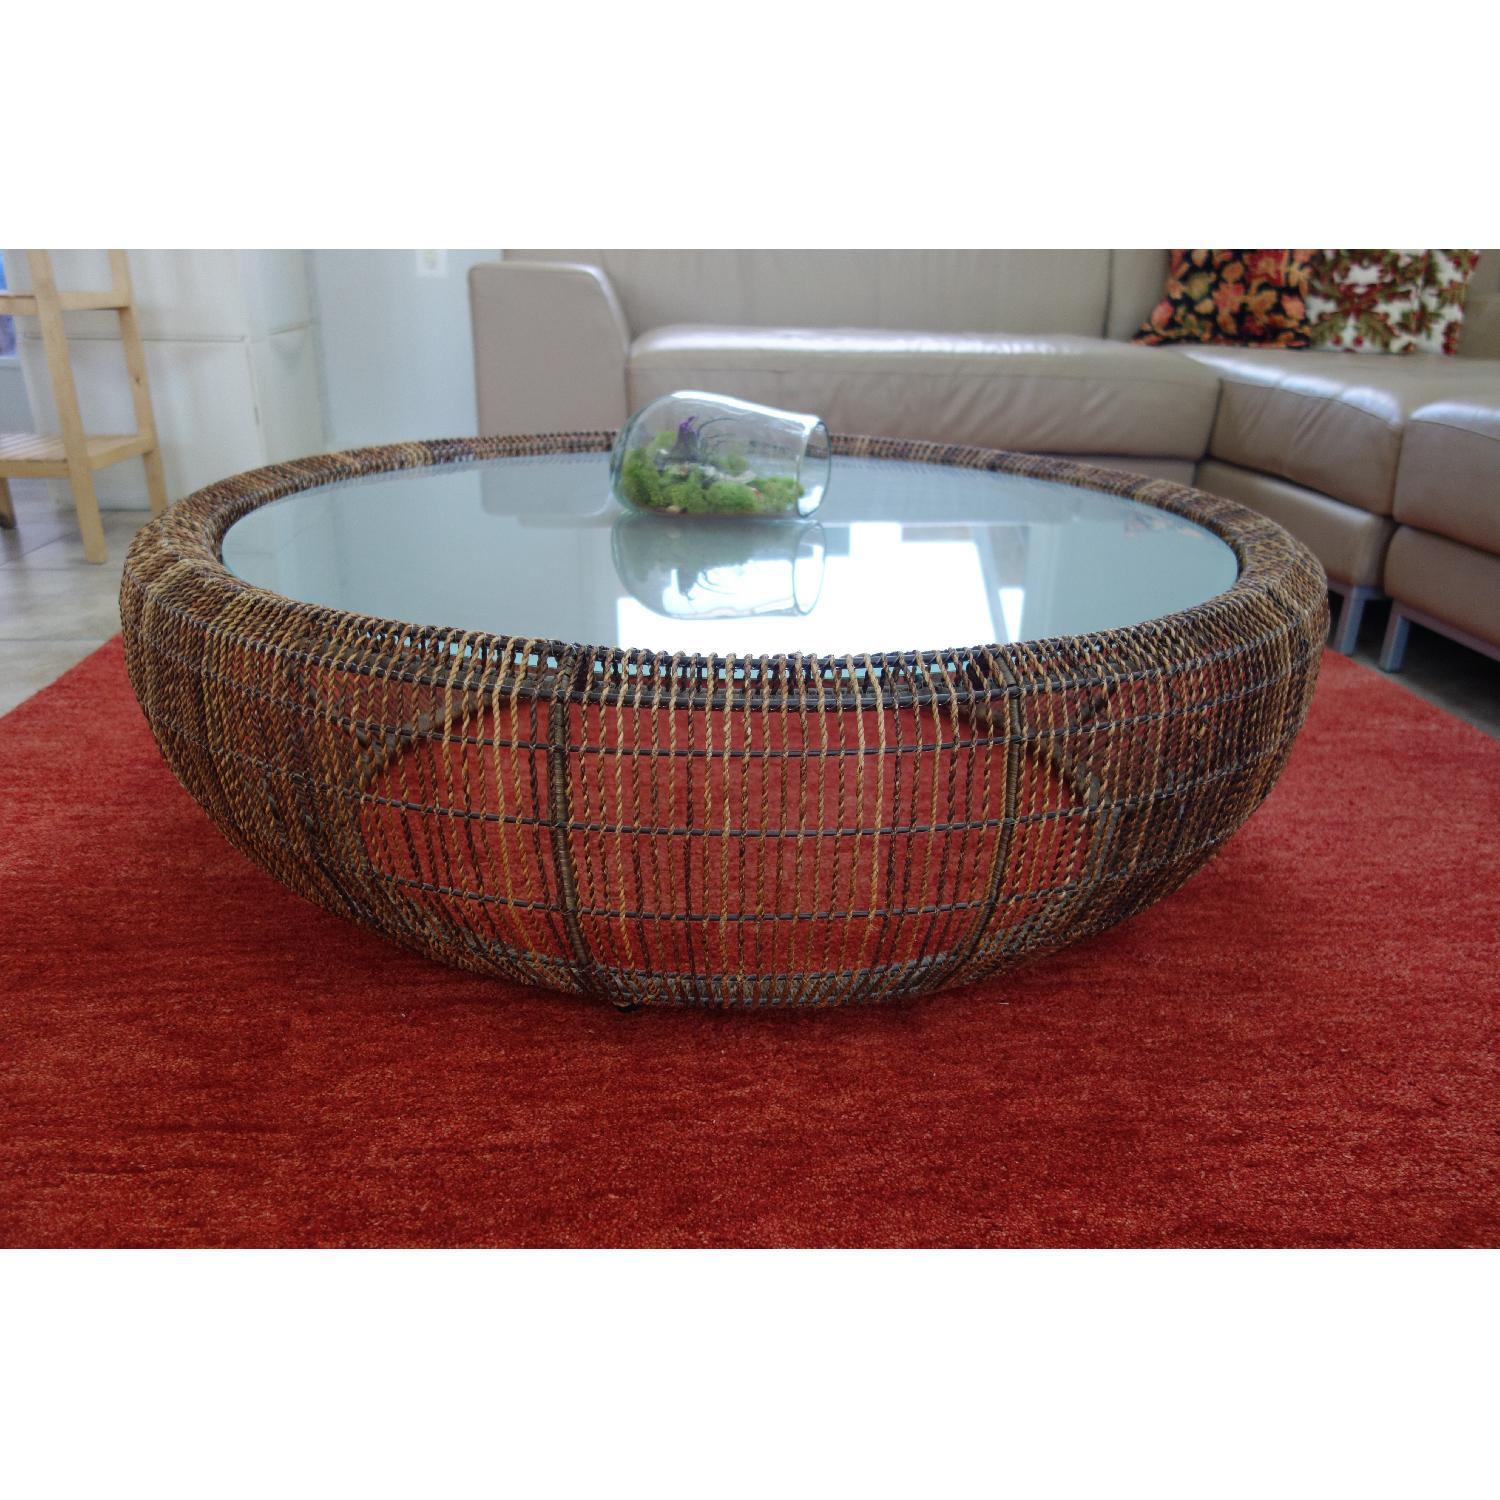 Kenneth Cobonpue Croissant Coffee Table - image-1